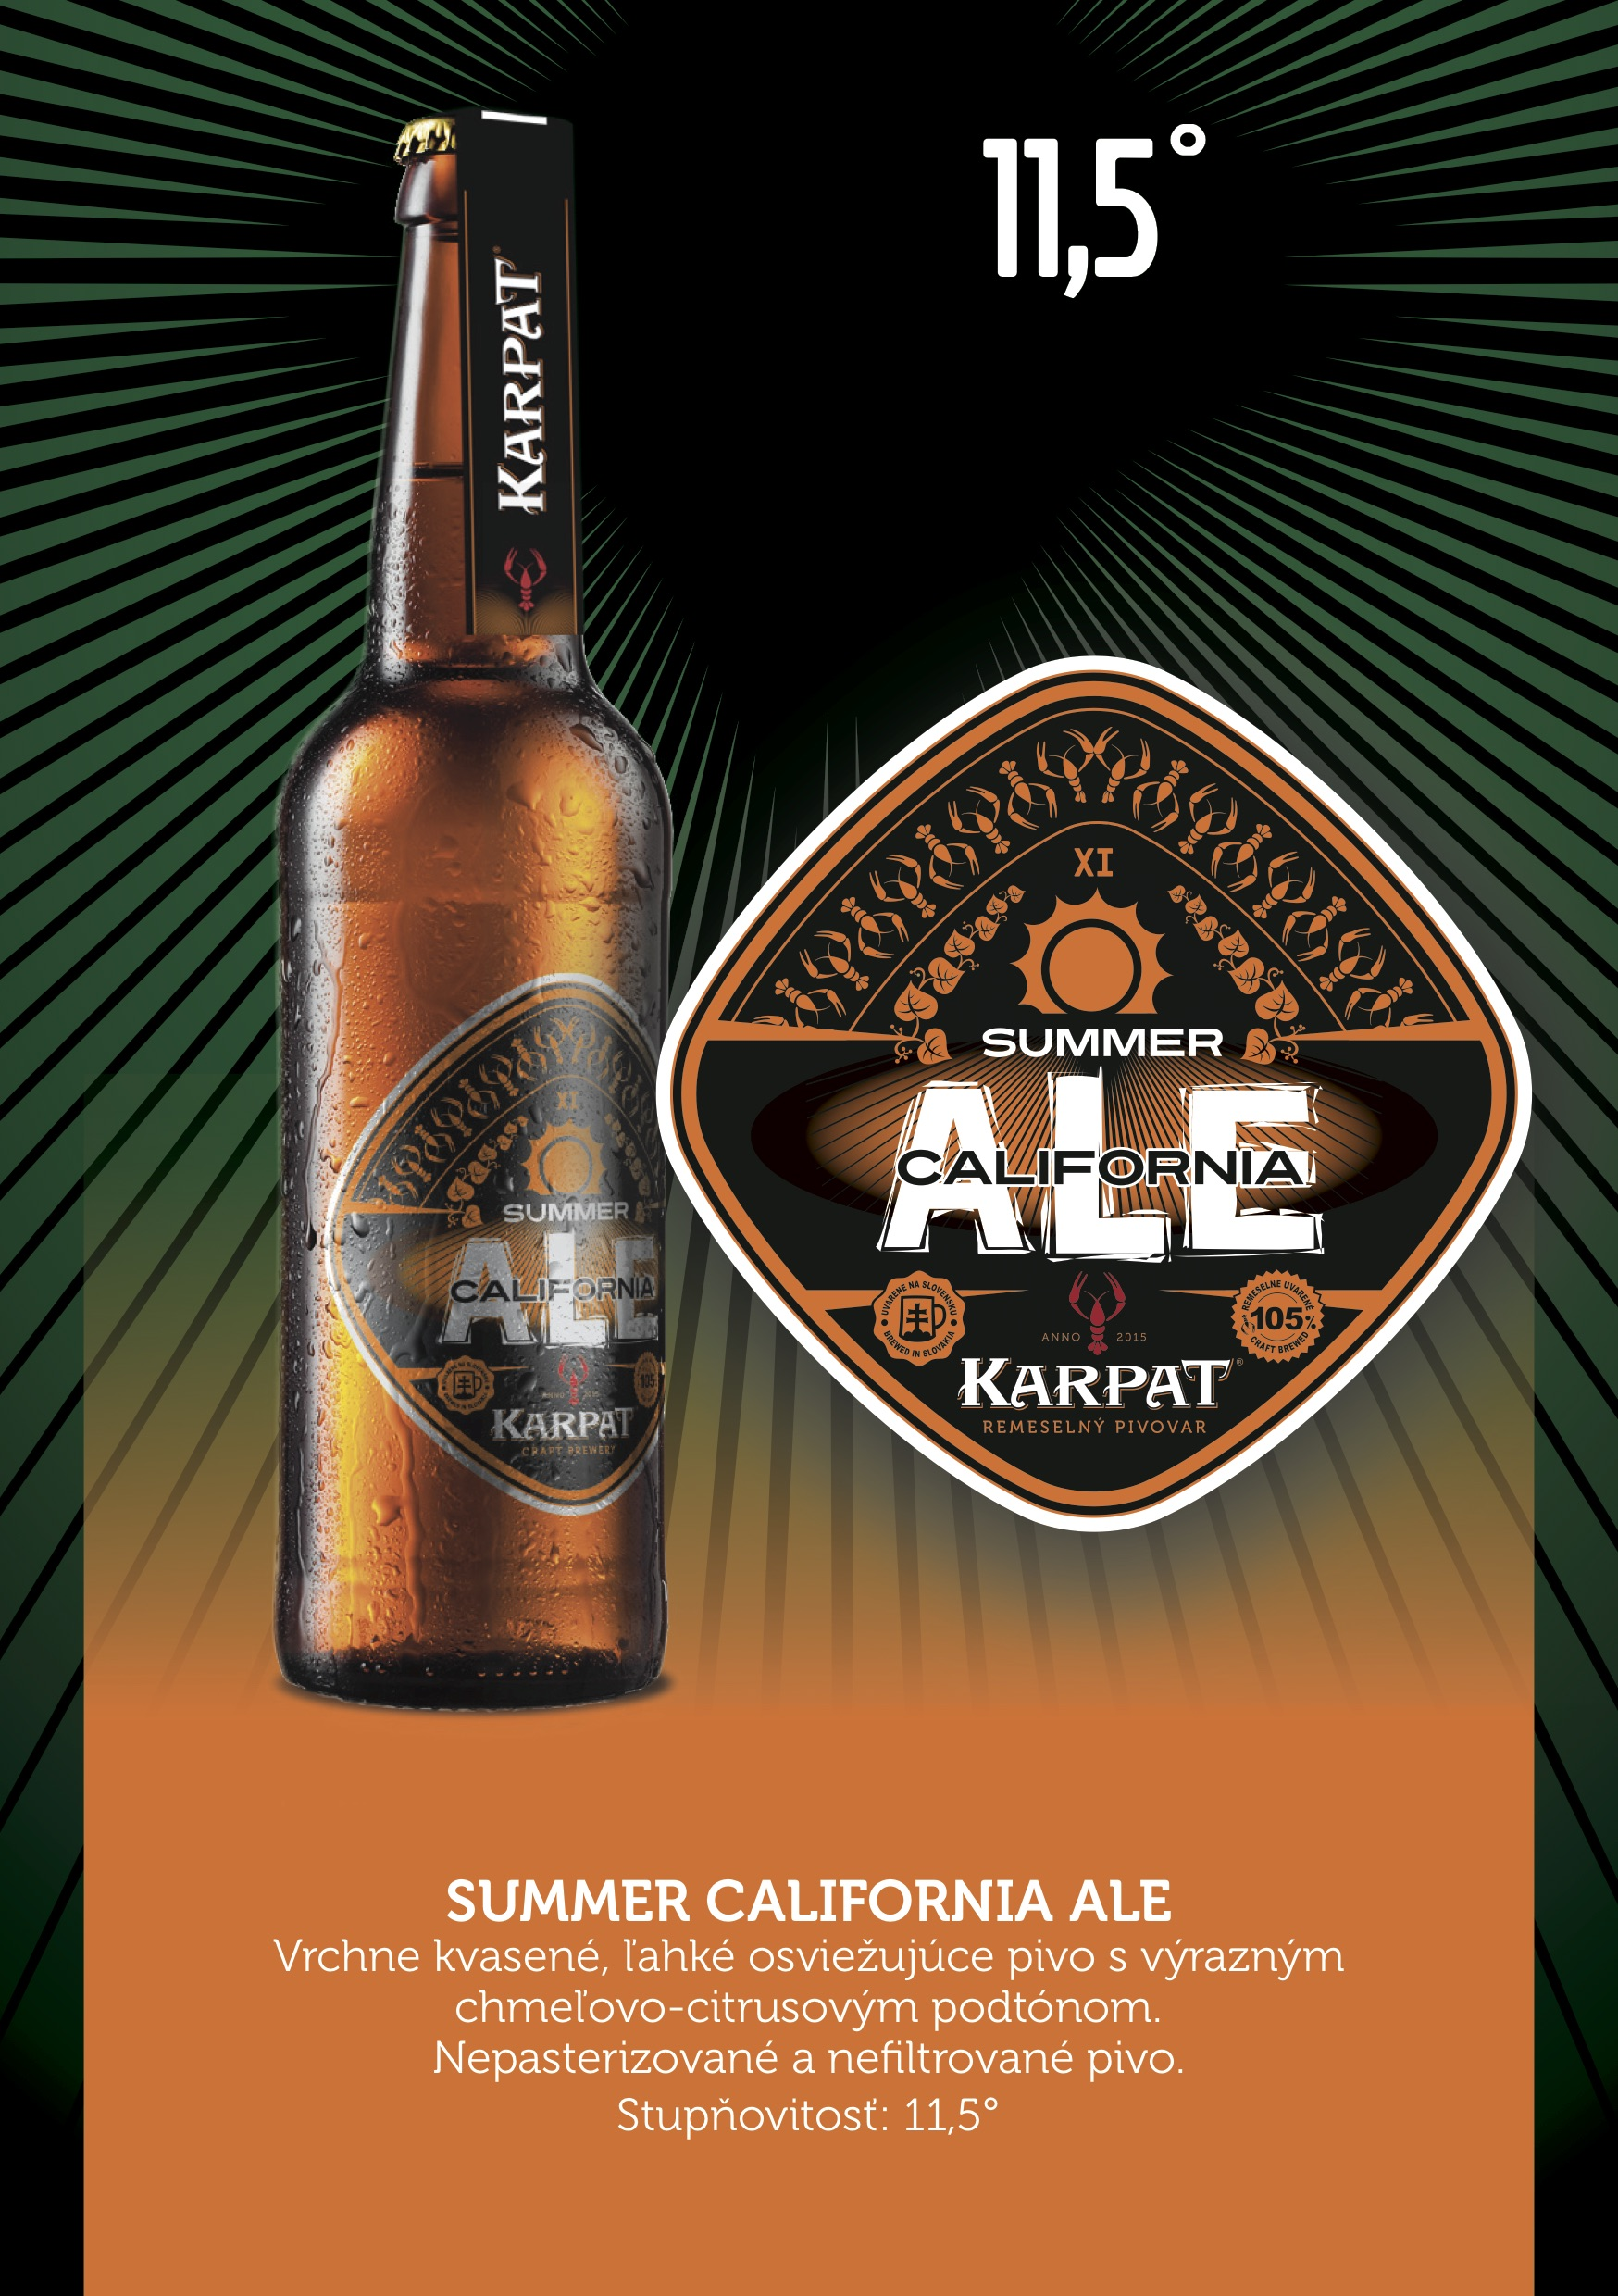 SUMMER CALIFORNIA ALE